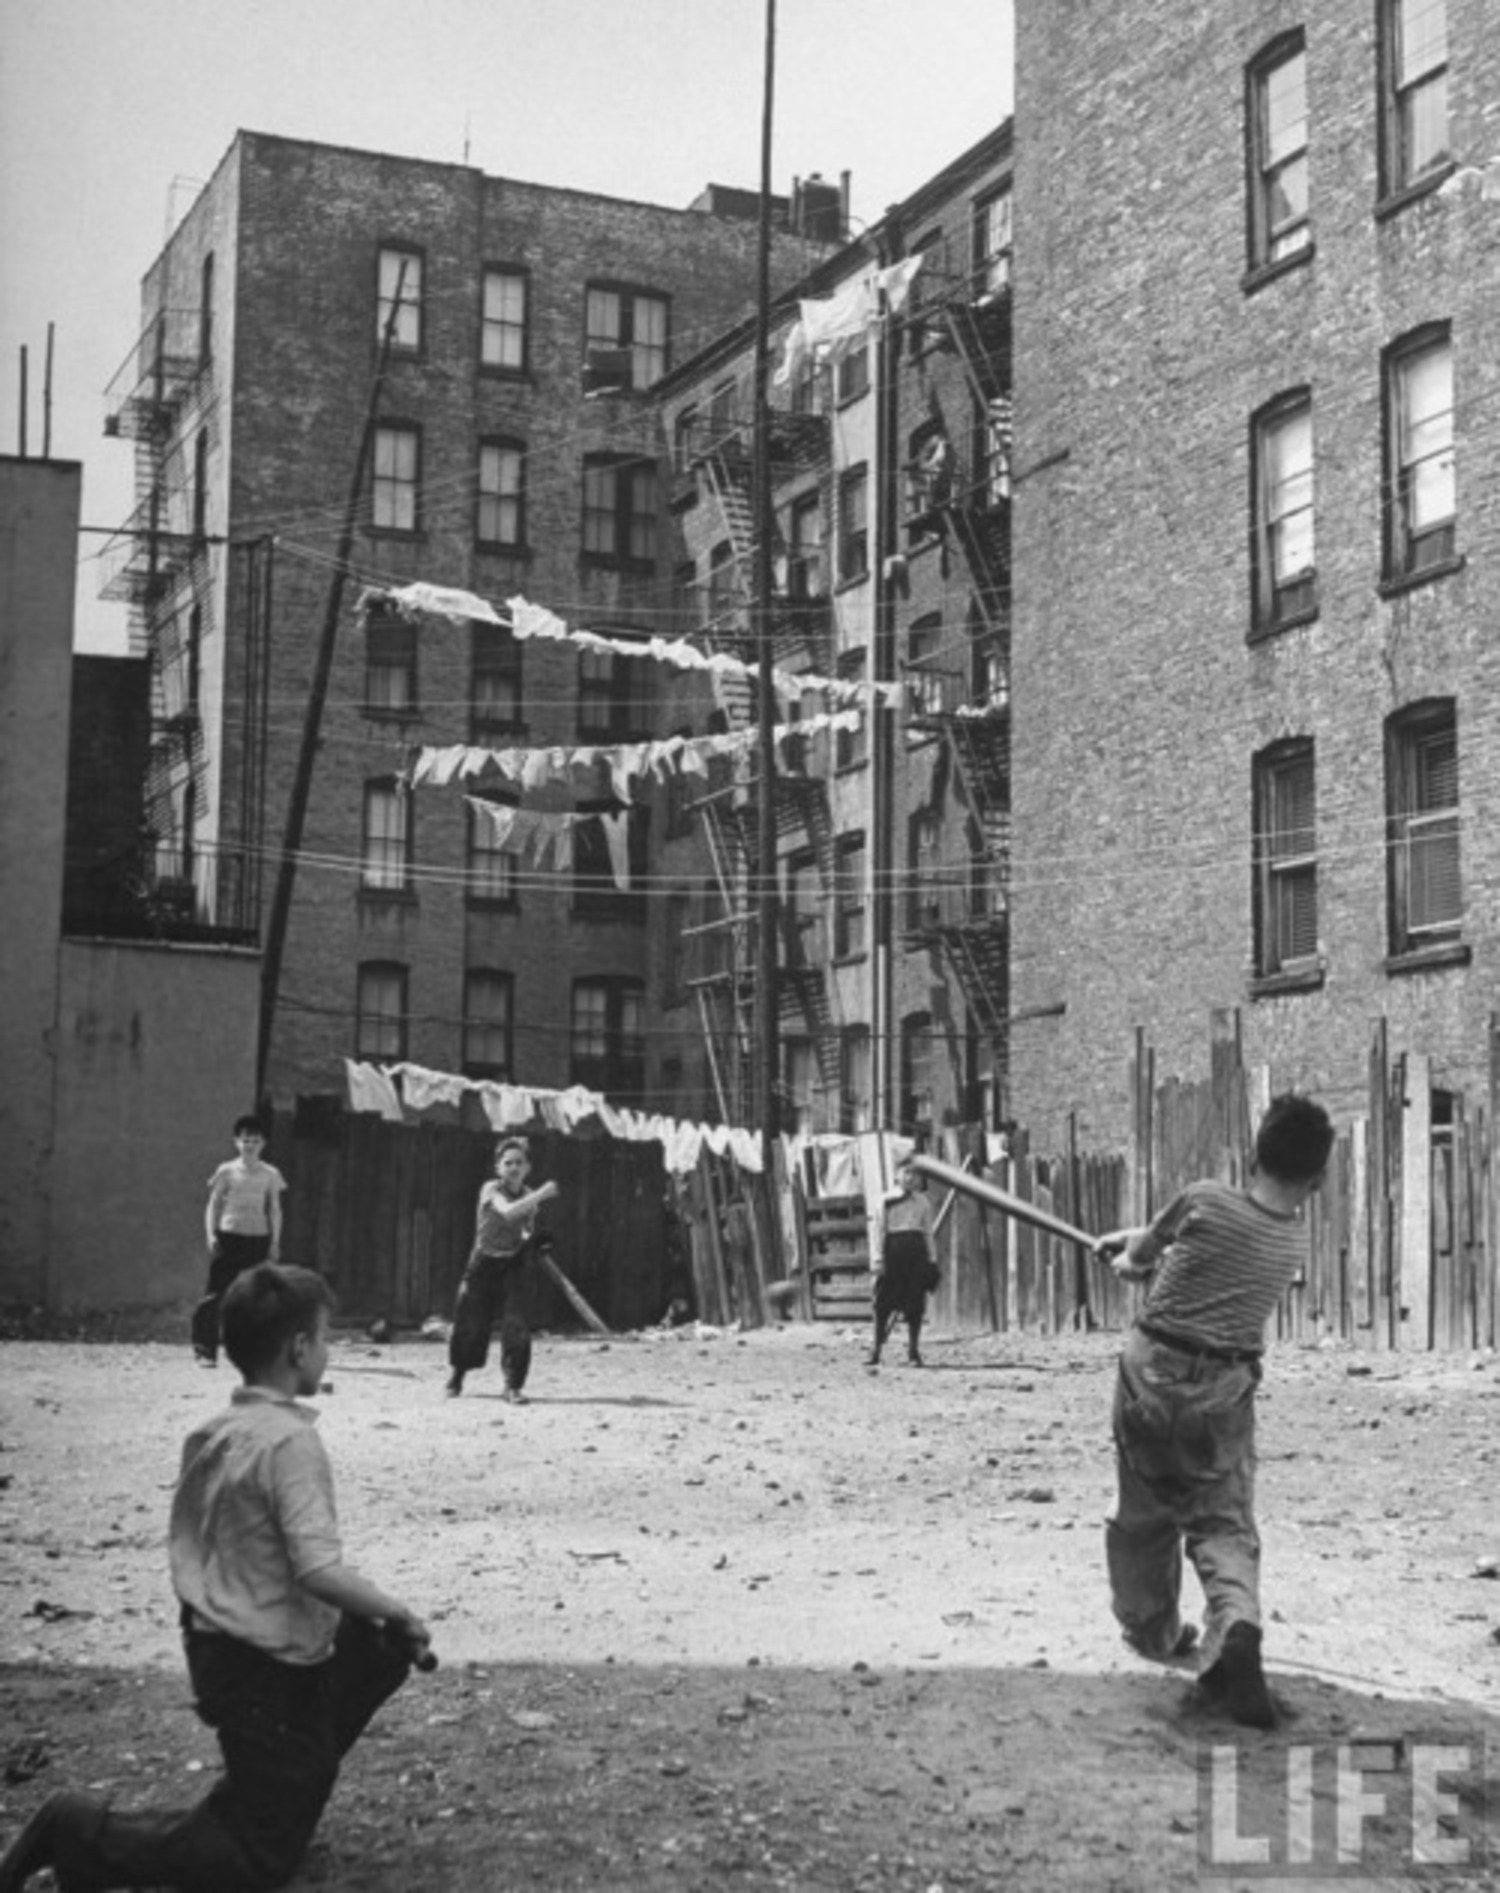 Vintage Photograph Of Young Boys Playing Stickball In A